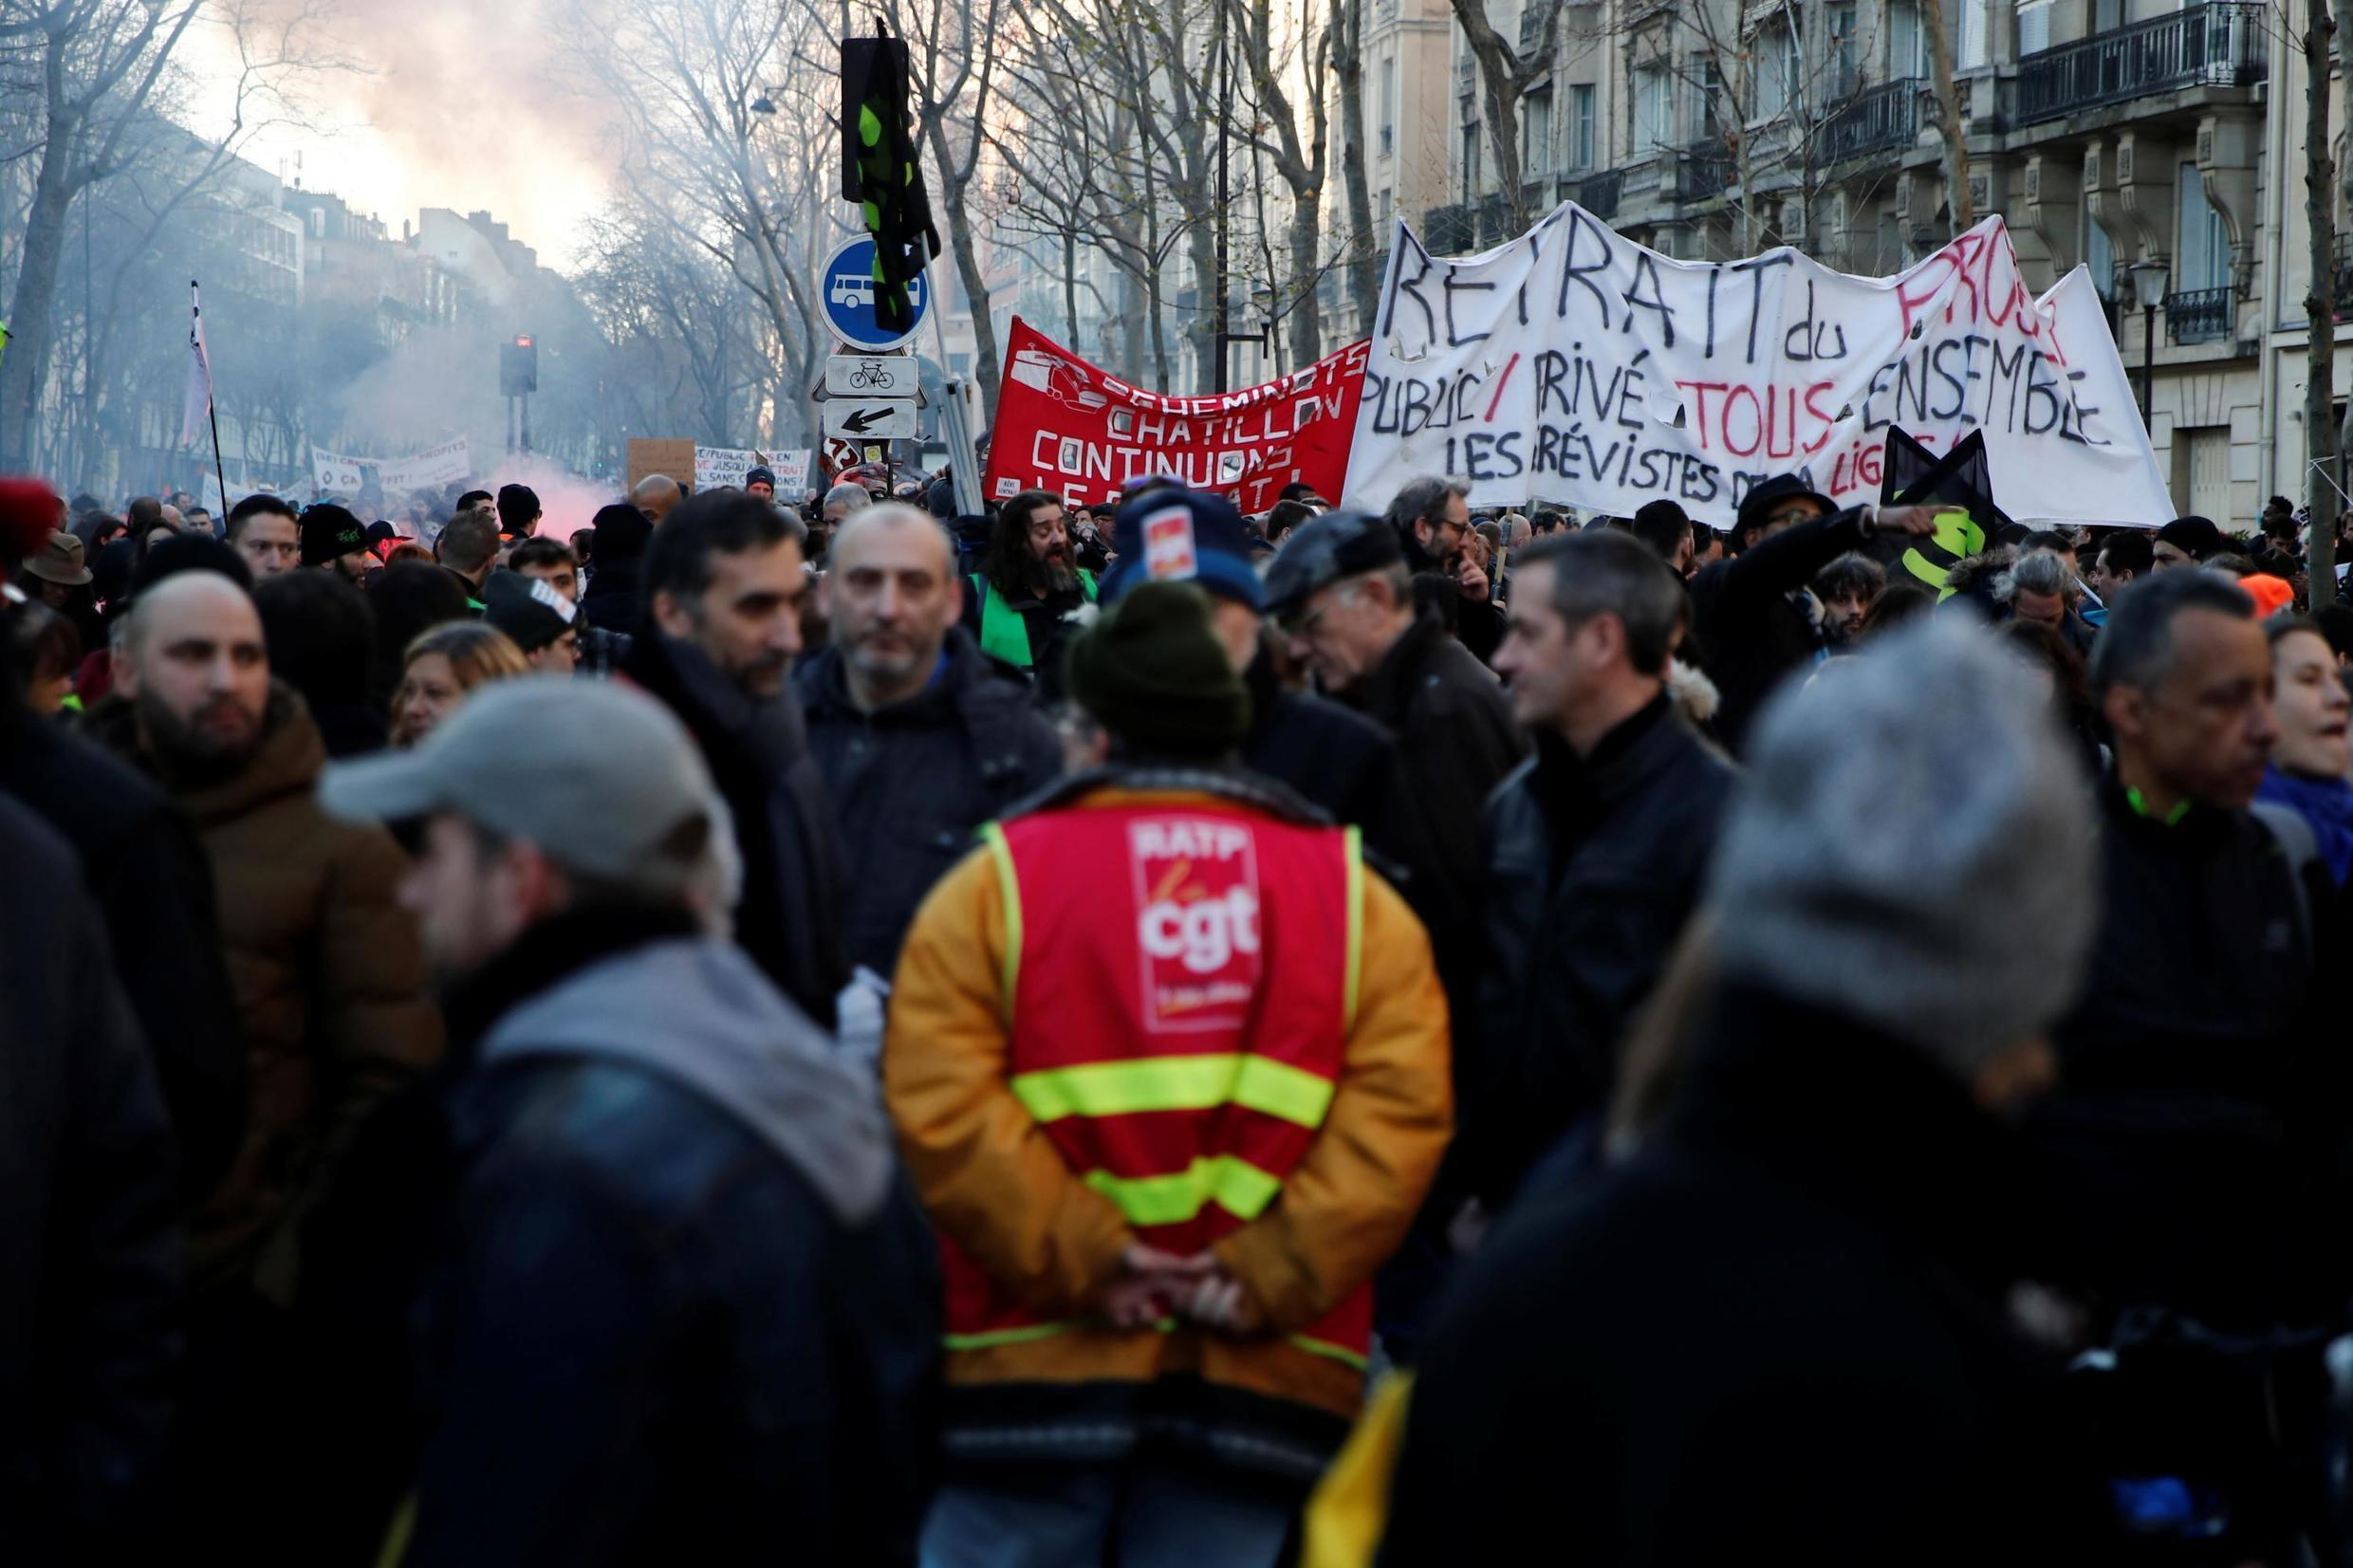 French labour unions and workers on strike attend a demonstration against French government's pensions reform plans in Paris as France faces its 43rd consecutive day of strikes January 16, 2020.